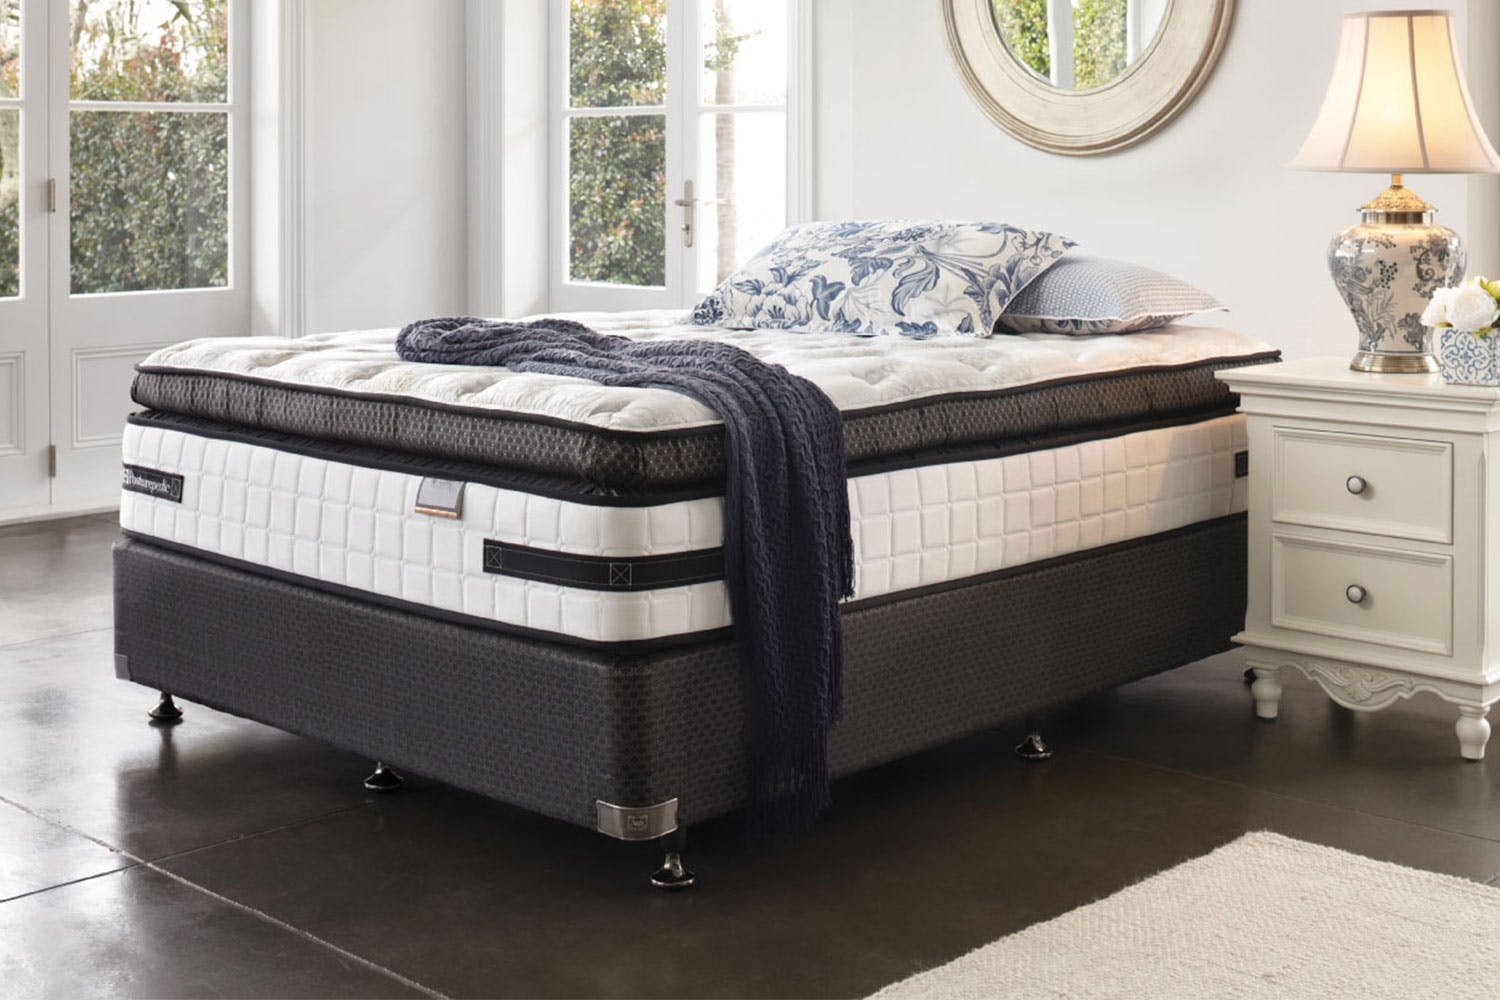 Kensington Ultra Plush Super King Bed By Sealy Posturepedic Harvey Norman New Zealand